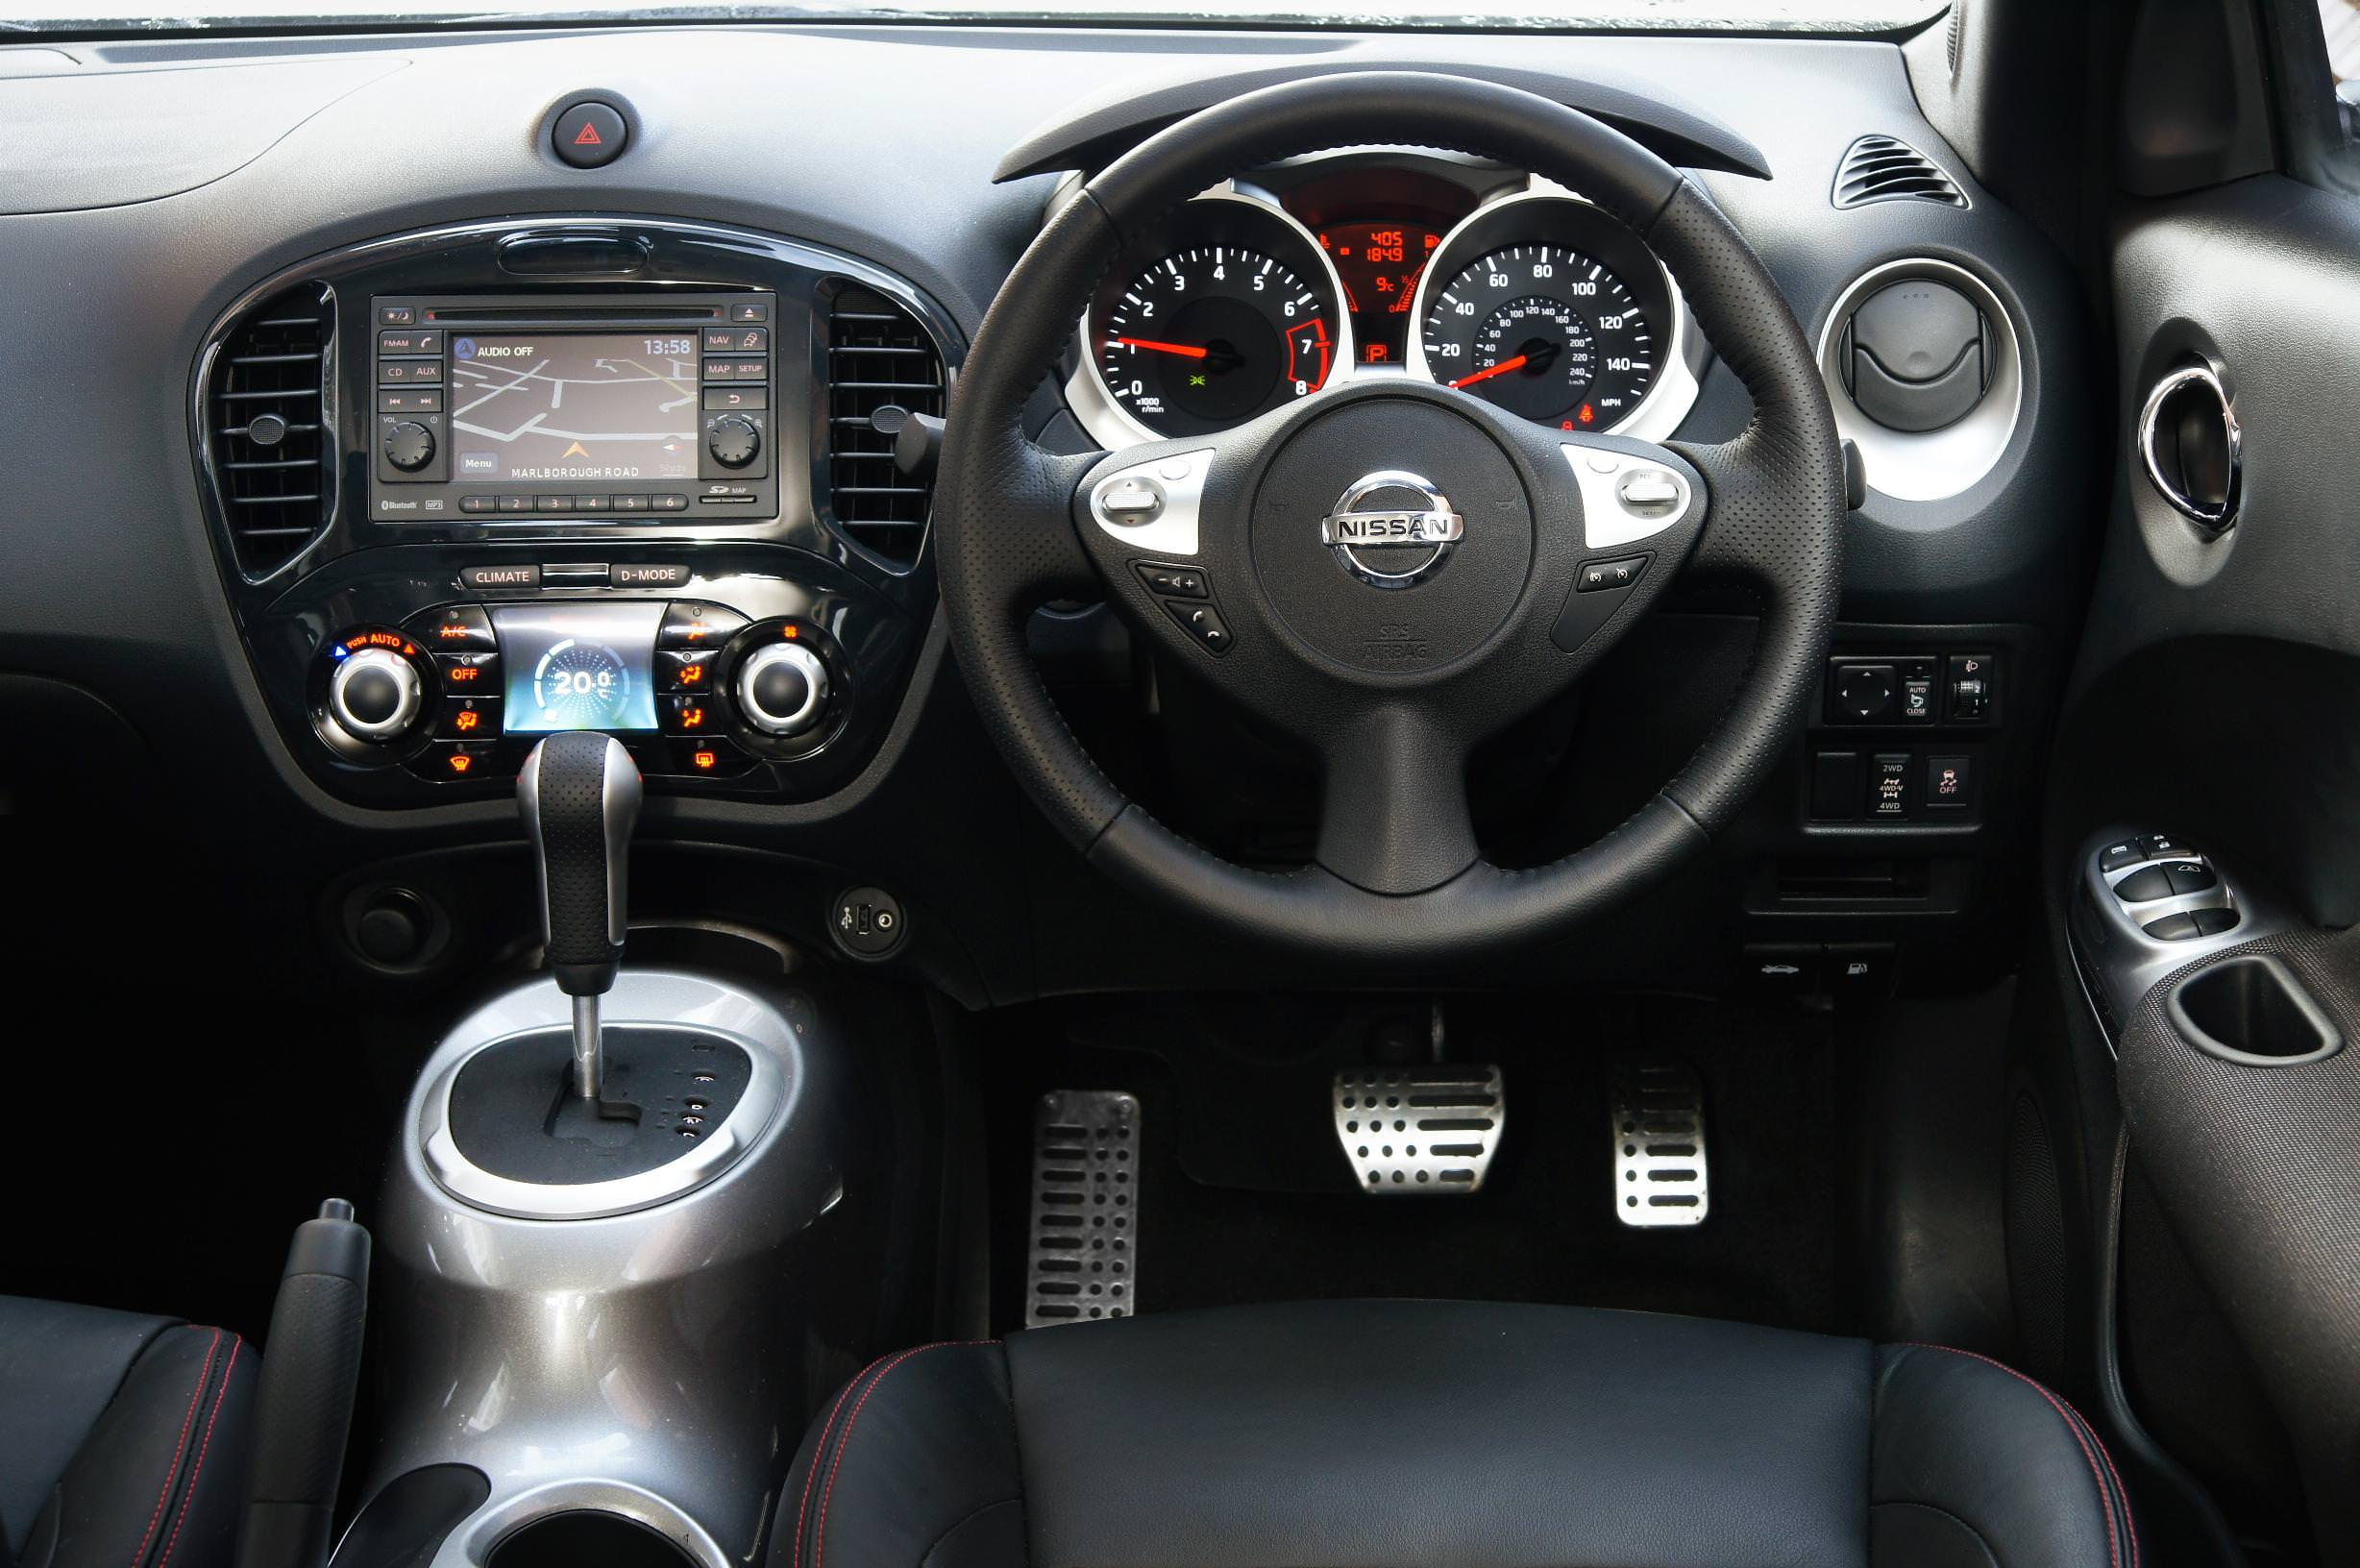 Nissan Juke used car buying guide_interior view